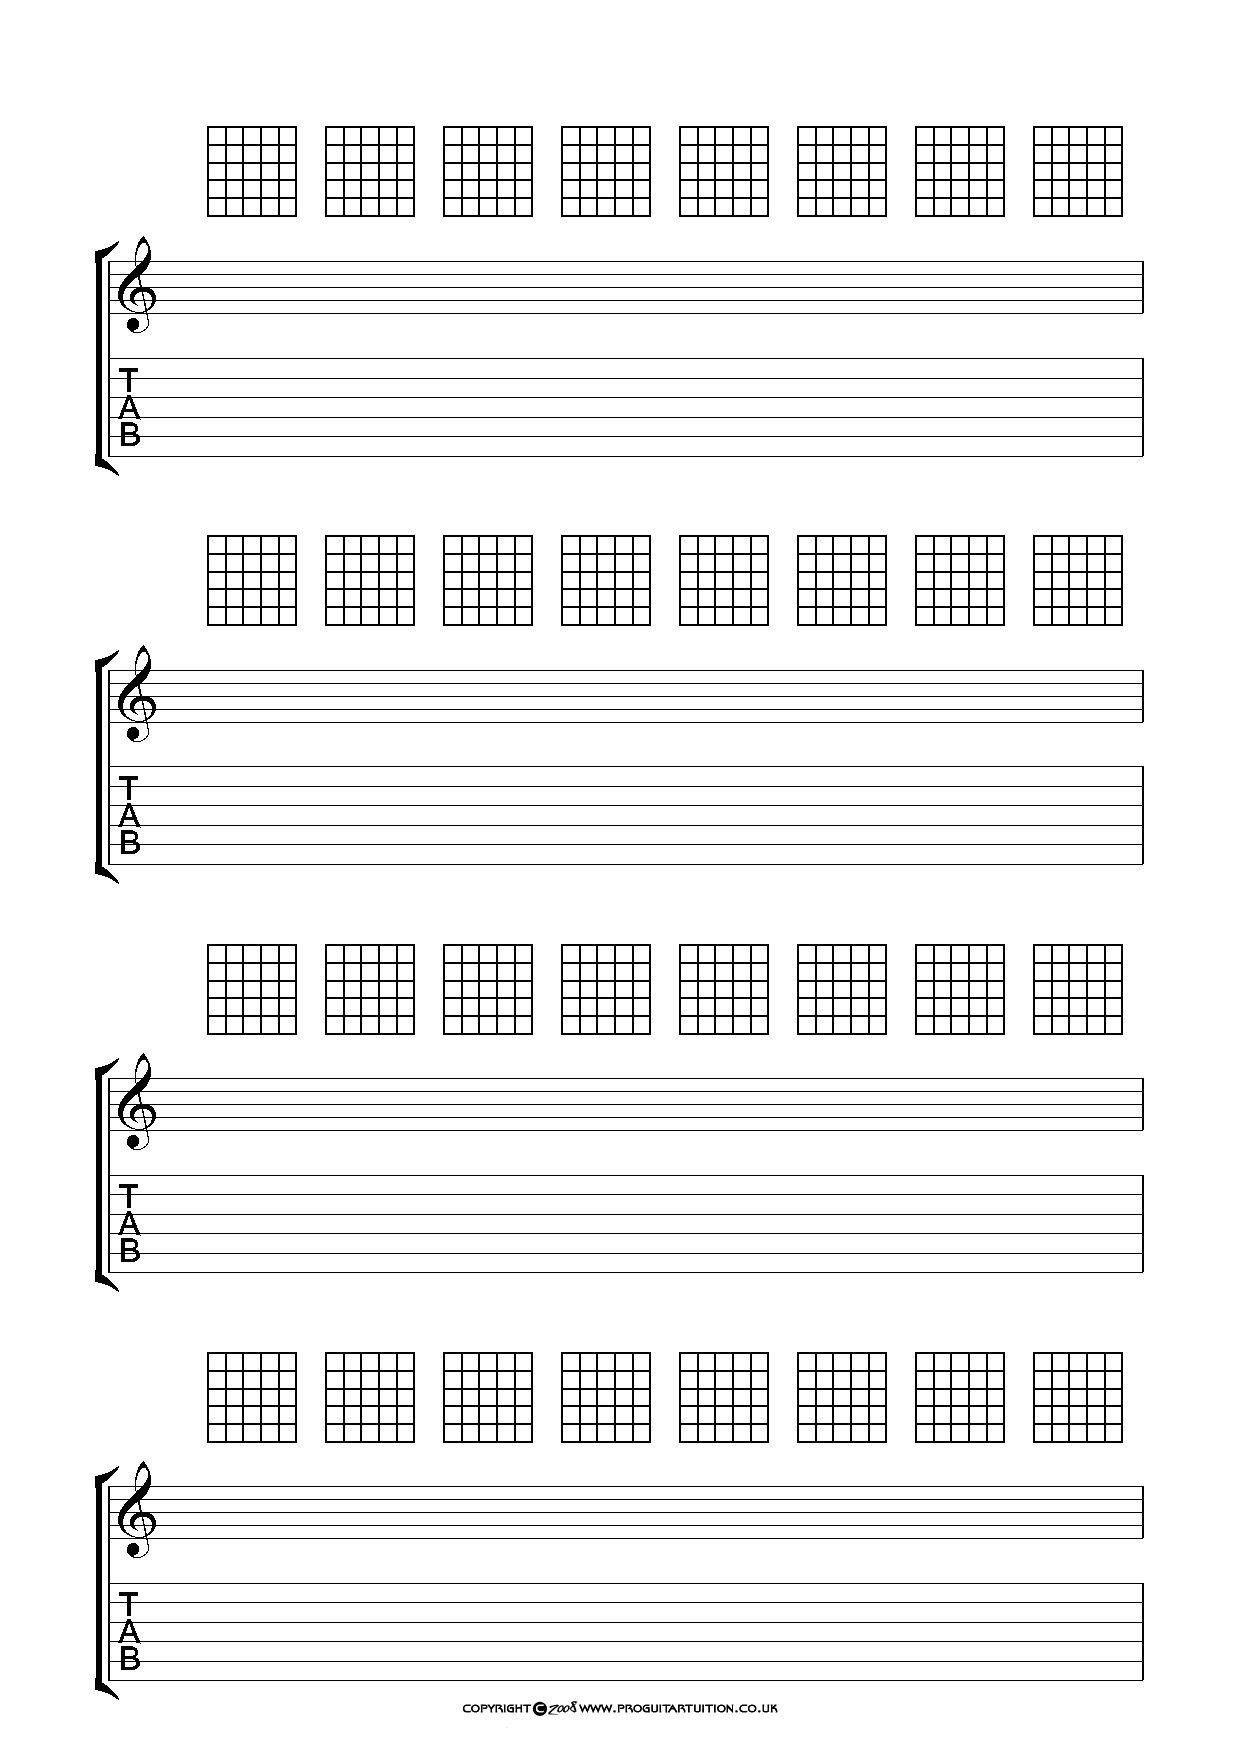 Blank Guitar Tab Sheets Blank Chord Sheets Google Search Music